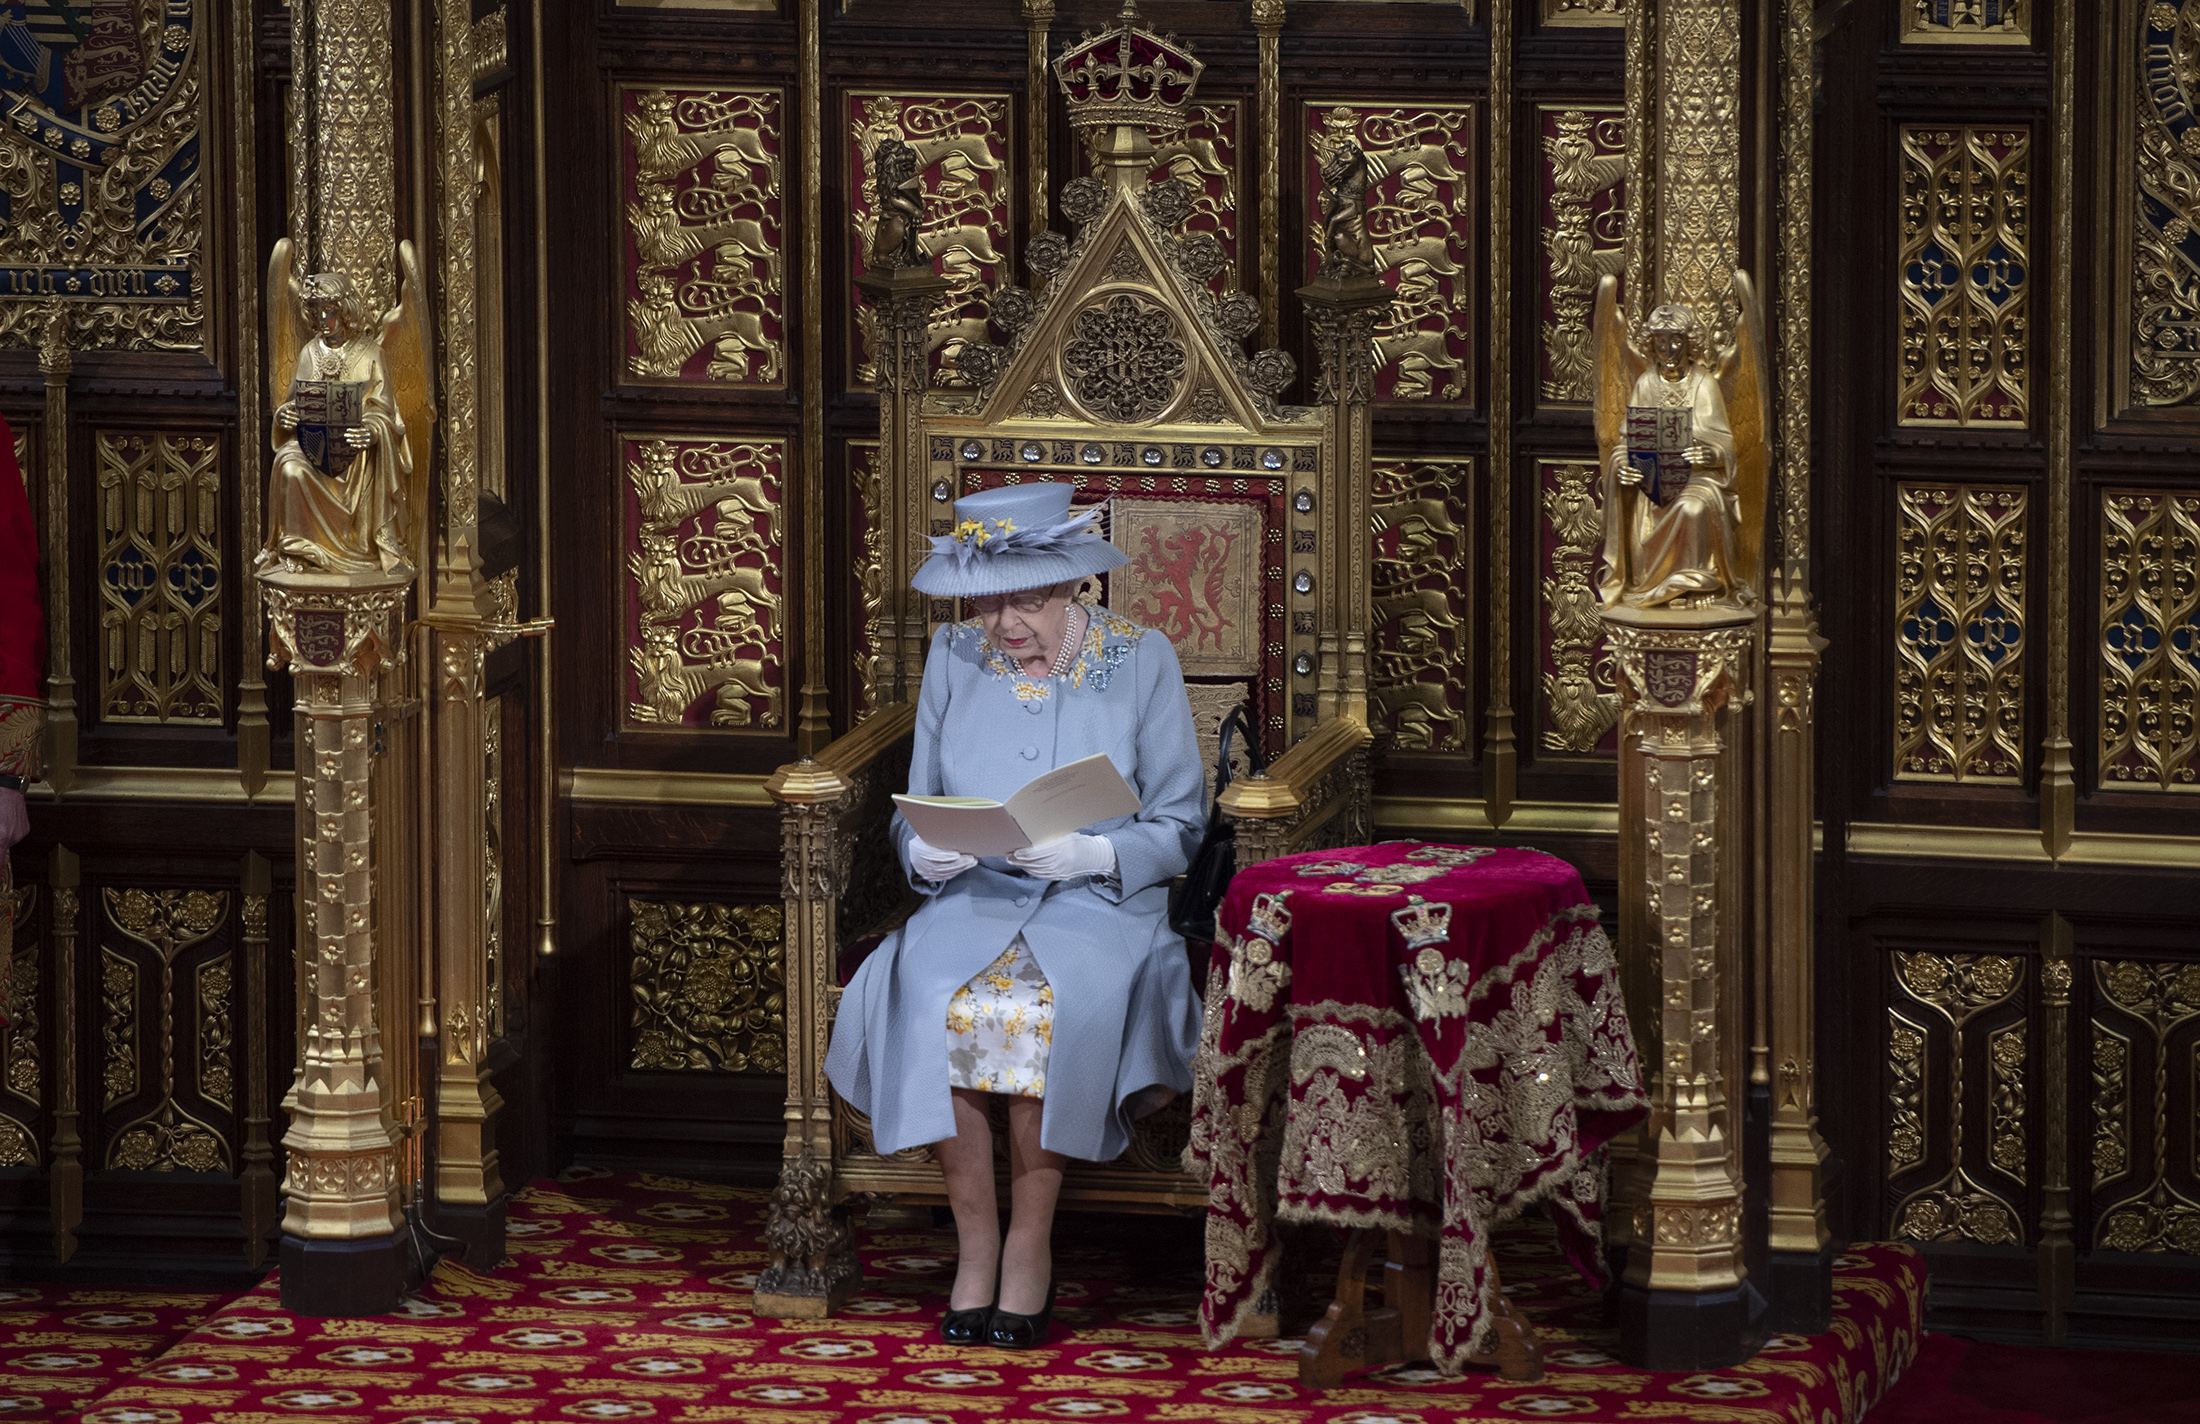 LONDON, ENGLAND - MAY 11: Queen Elizabeth II delivers the Queen's Speech in the House of Lord's Chamber with Prince Charles, Prince of Wales and Camilla, Duchess of Cornwall seated (R) during the State Opening of Parliament at the House of Lords on May 11, 2021 in London, England. (Photo by Eddie Mulholland - WPA Pool/Getty Images)